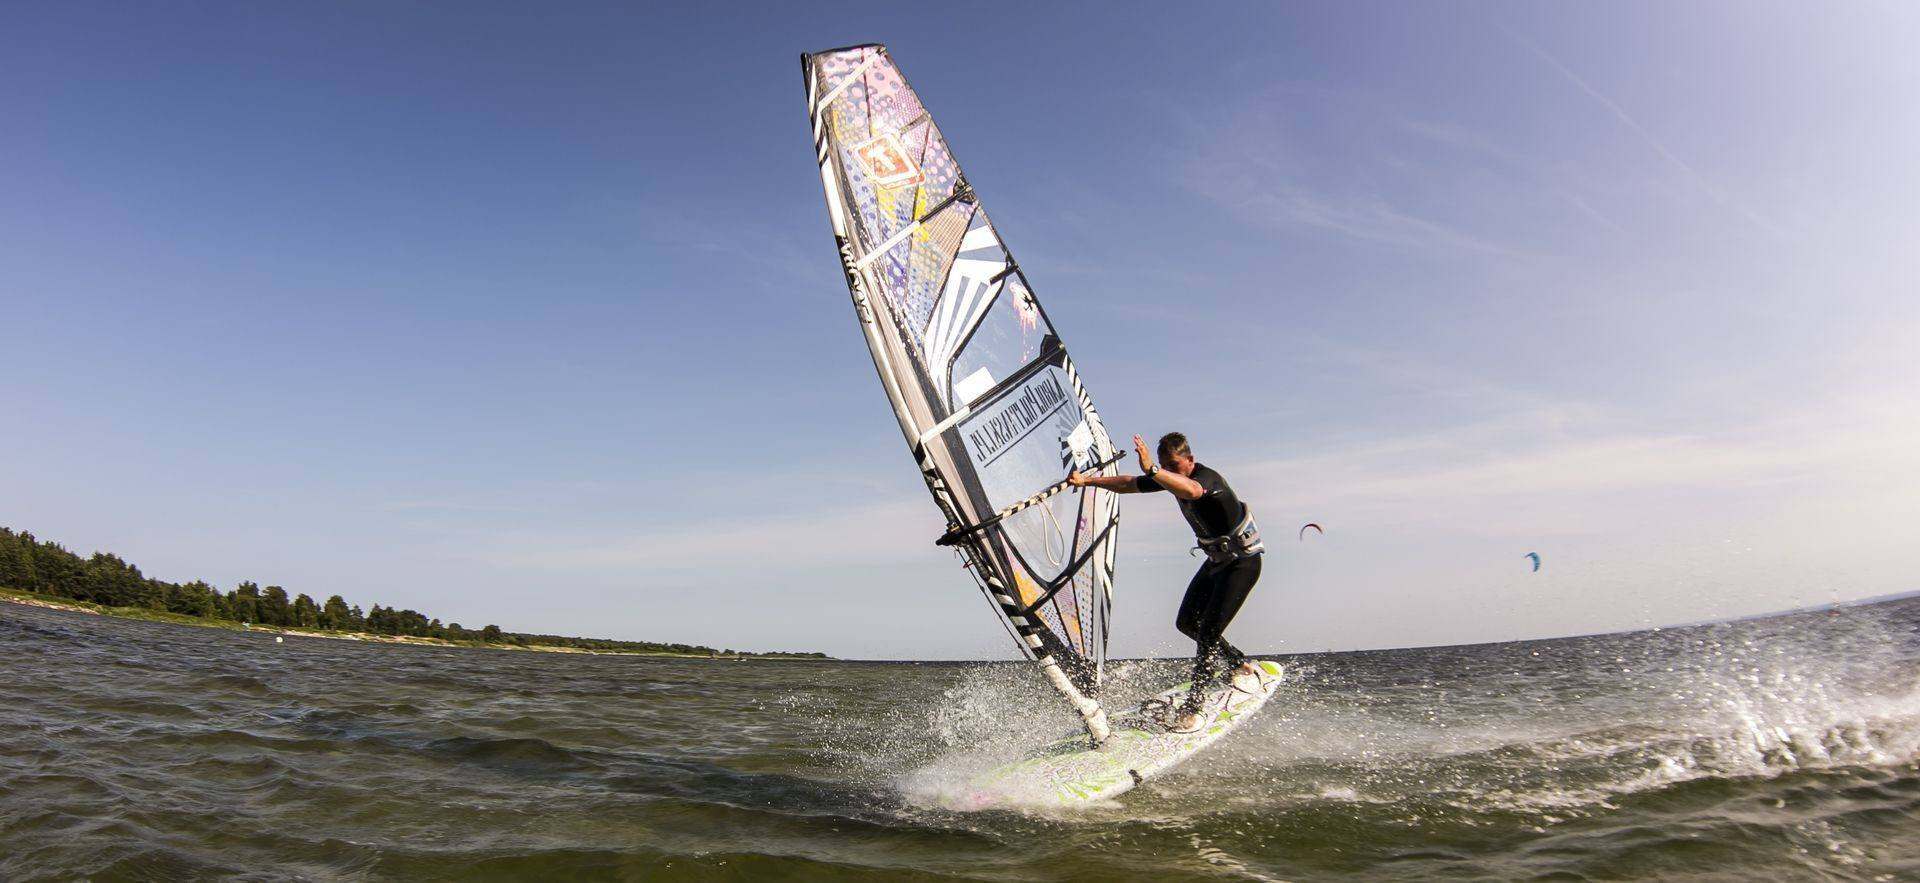 windsurfing2-compressor